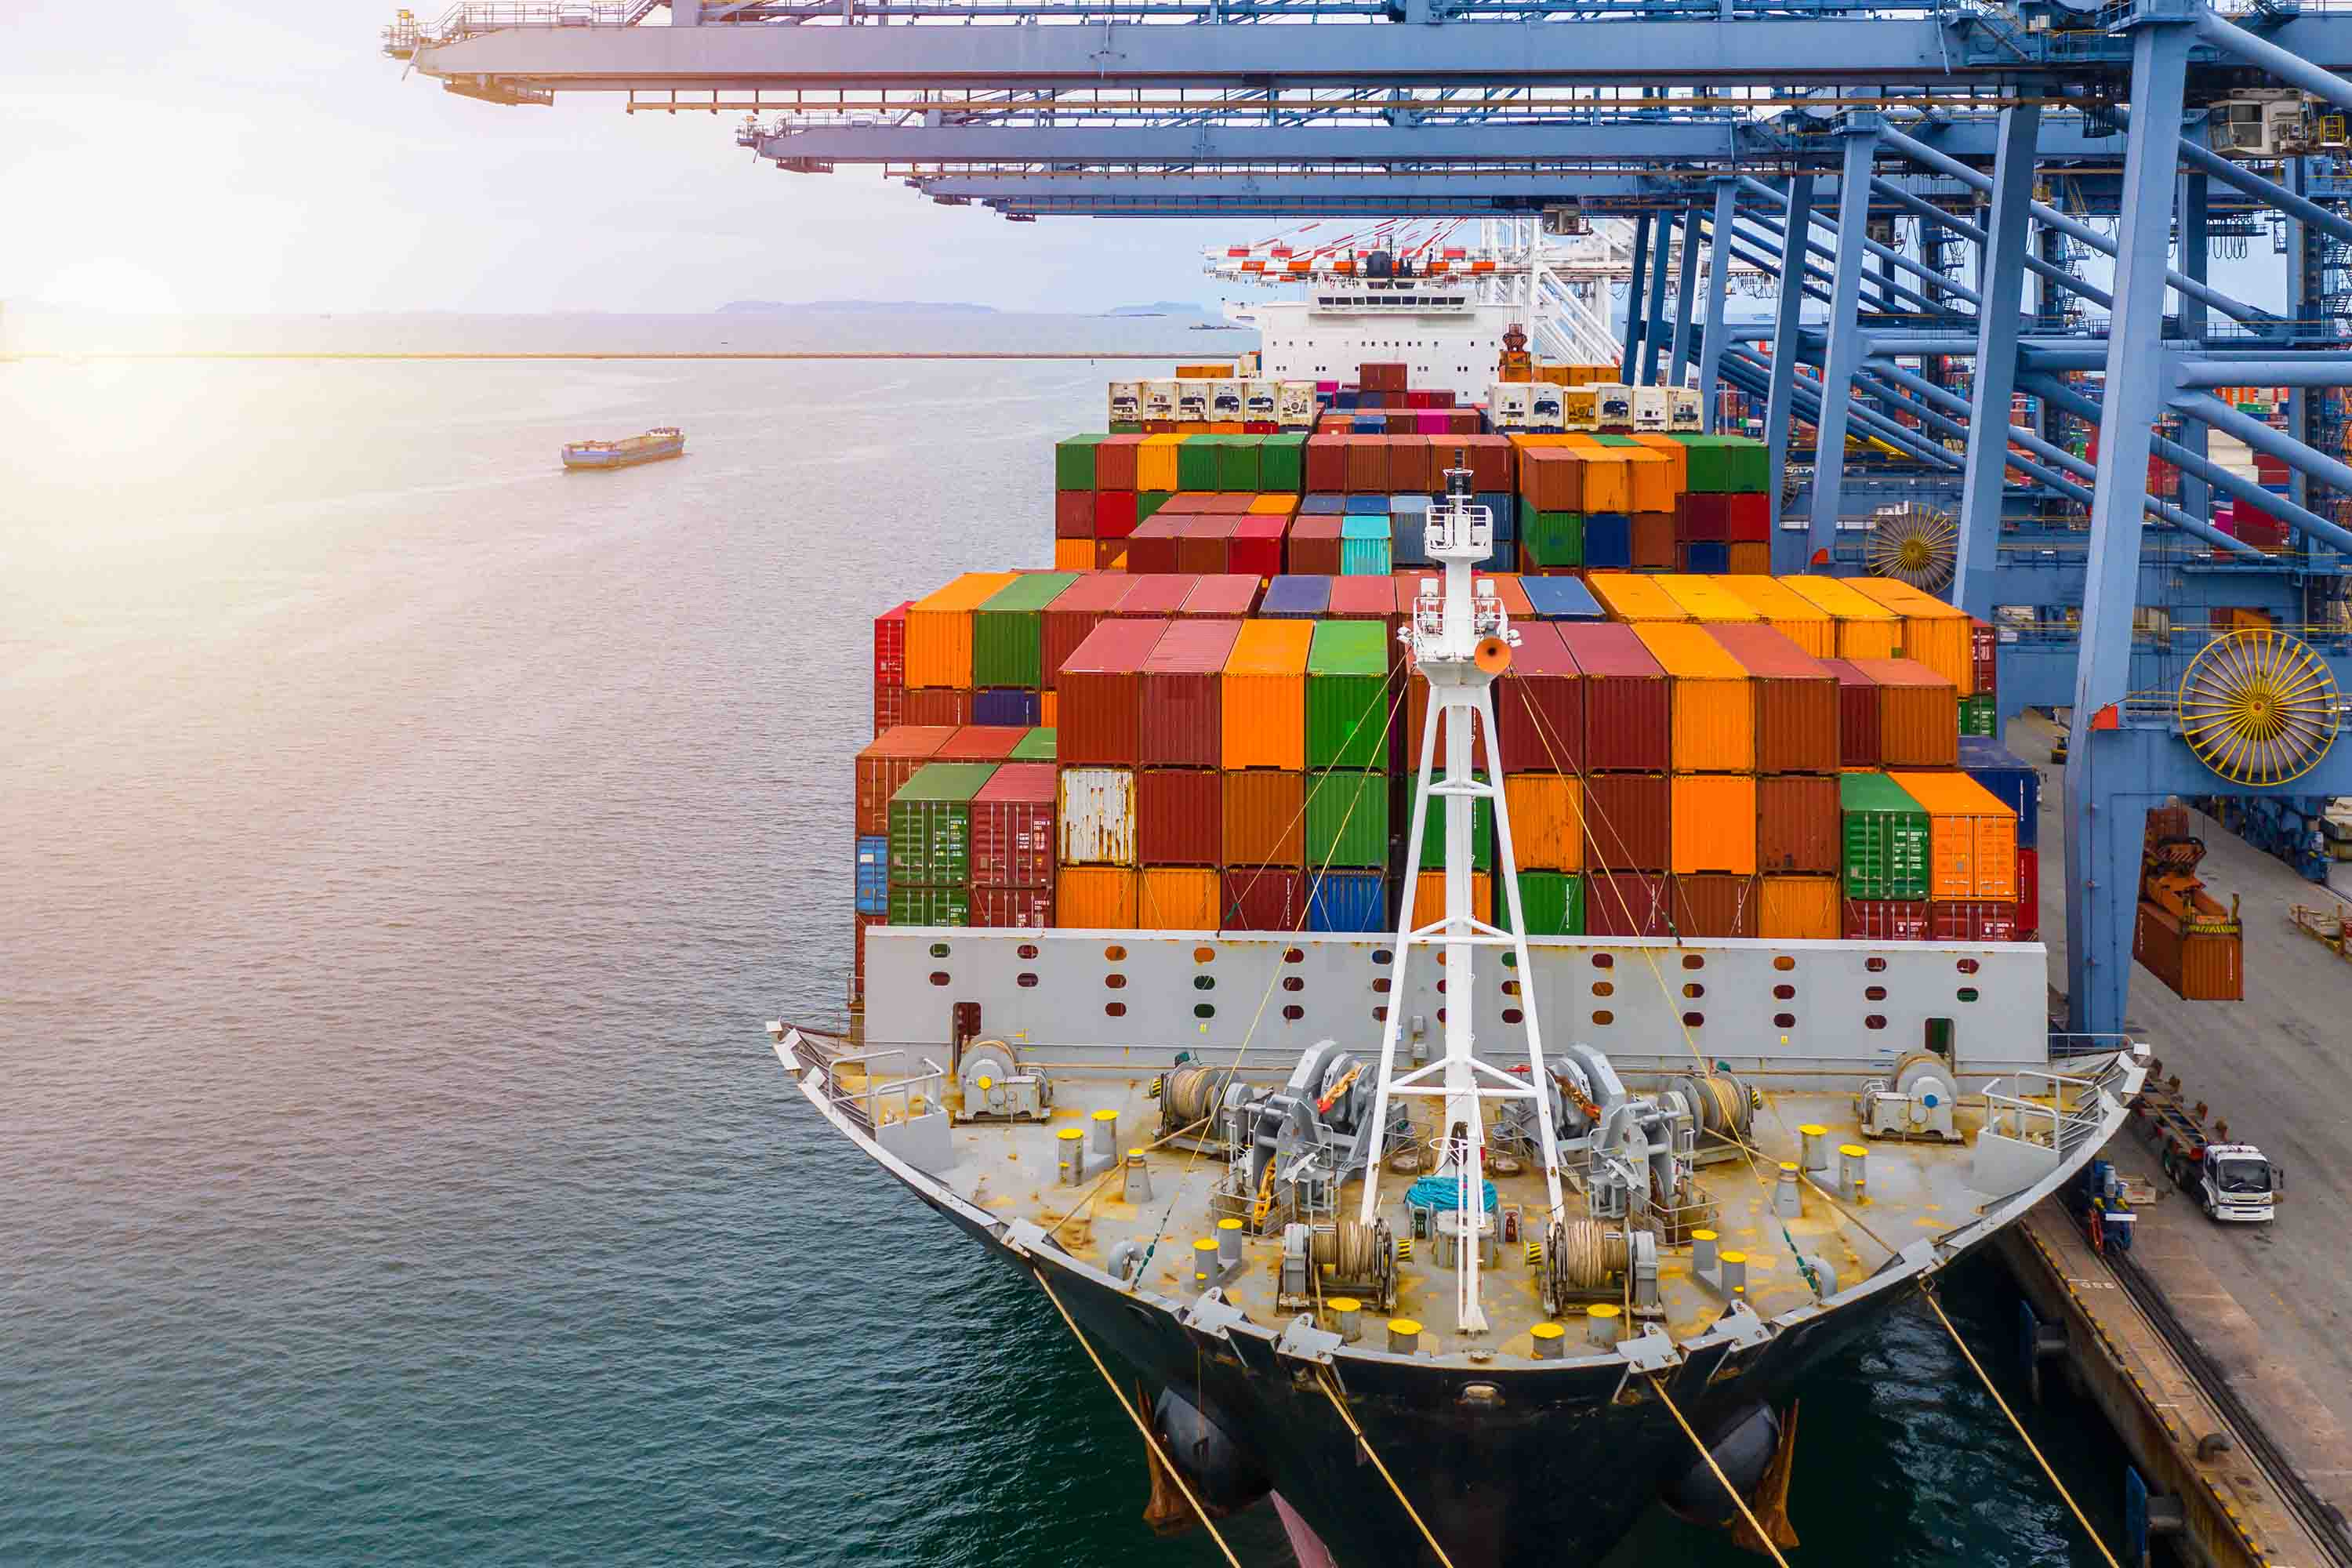 Singapore for the 8th consecutive year as top shipping hub Atlas Logistic NEtwork